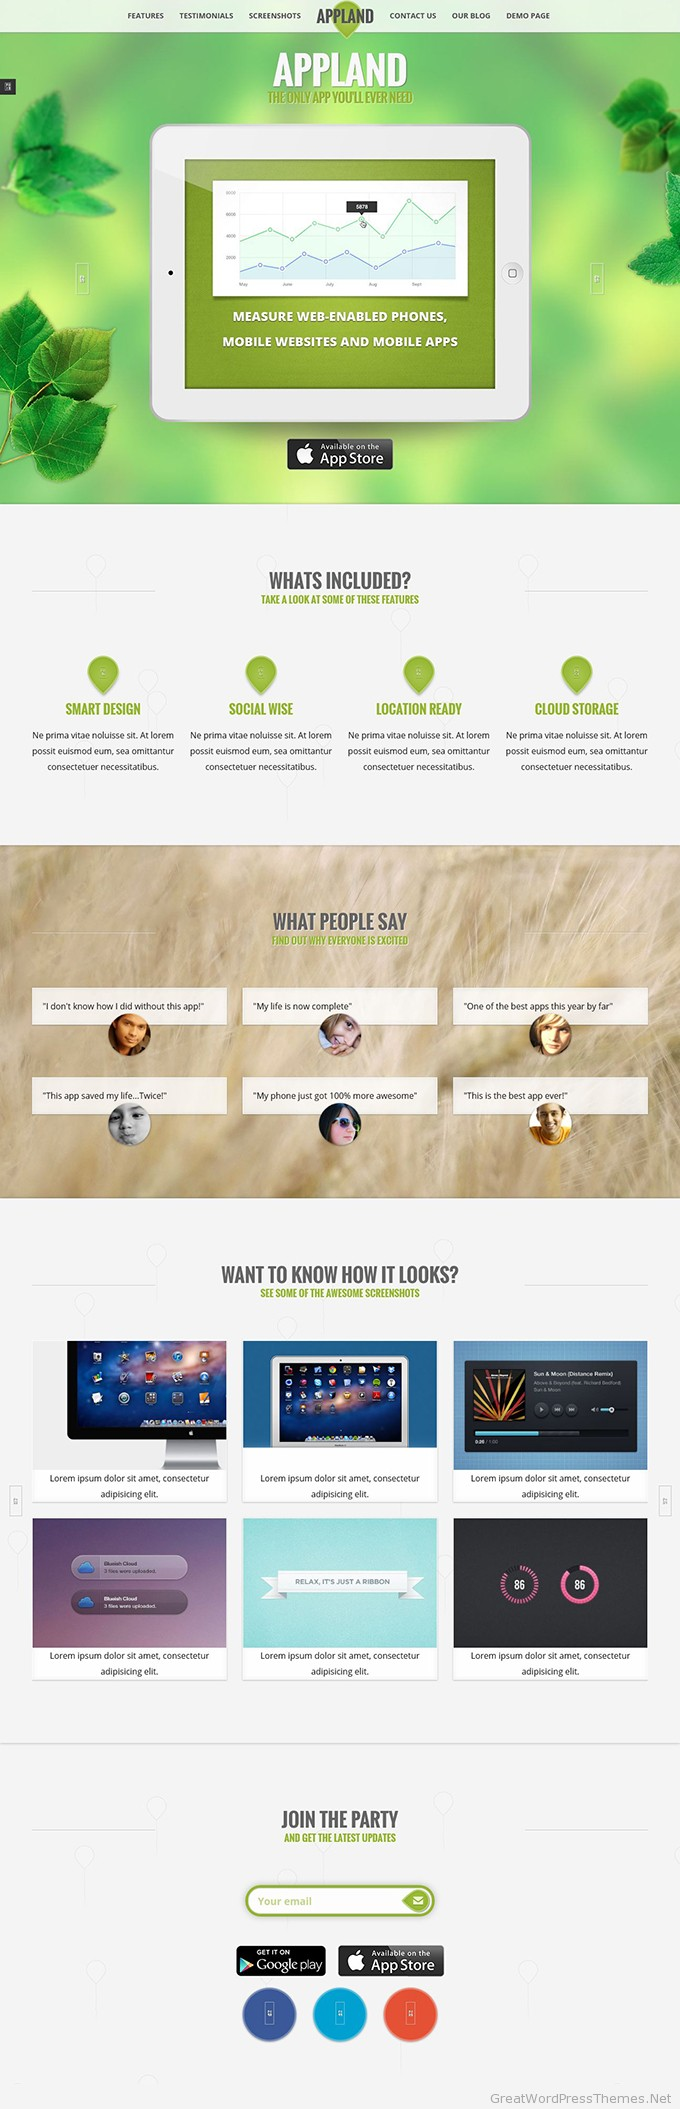 AppLand-Wordpress-theme